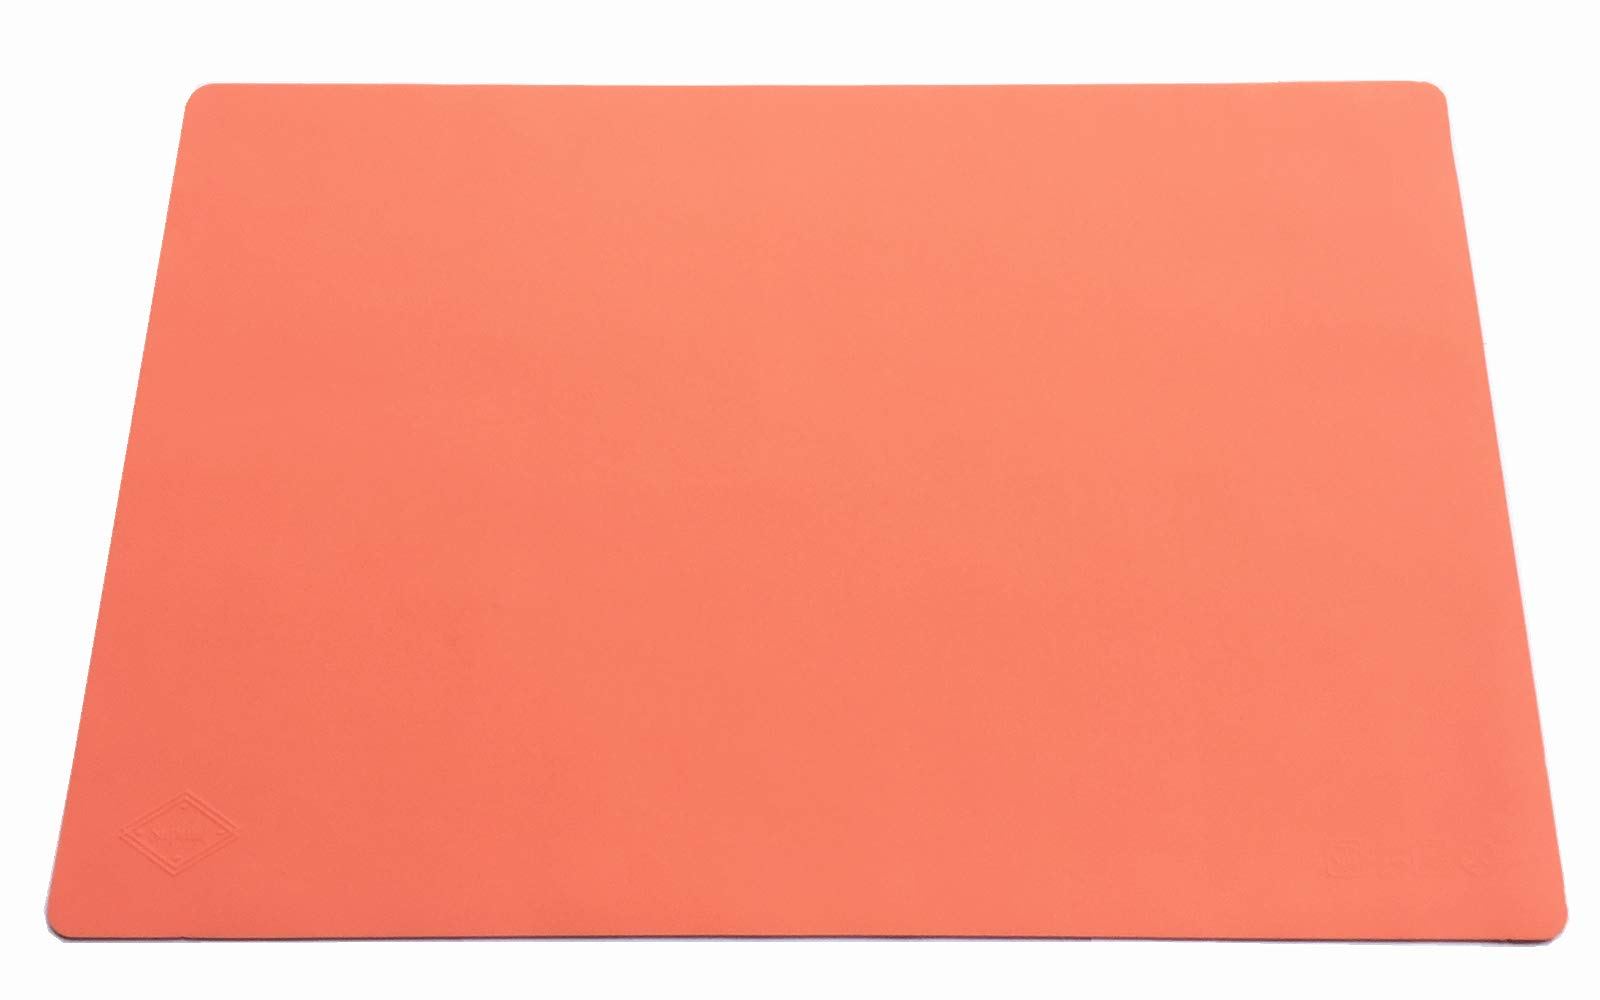 Supmat XL by EPHome, Super Versatile Extra Large and Thick Silicone Mat, Counter Mat (1, Living Coral)